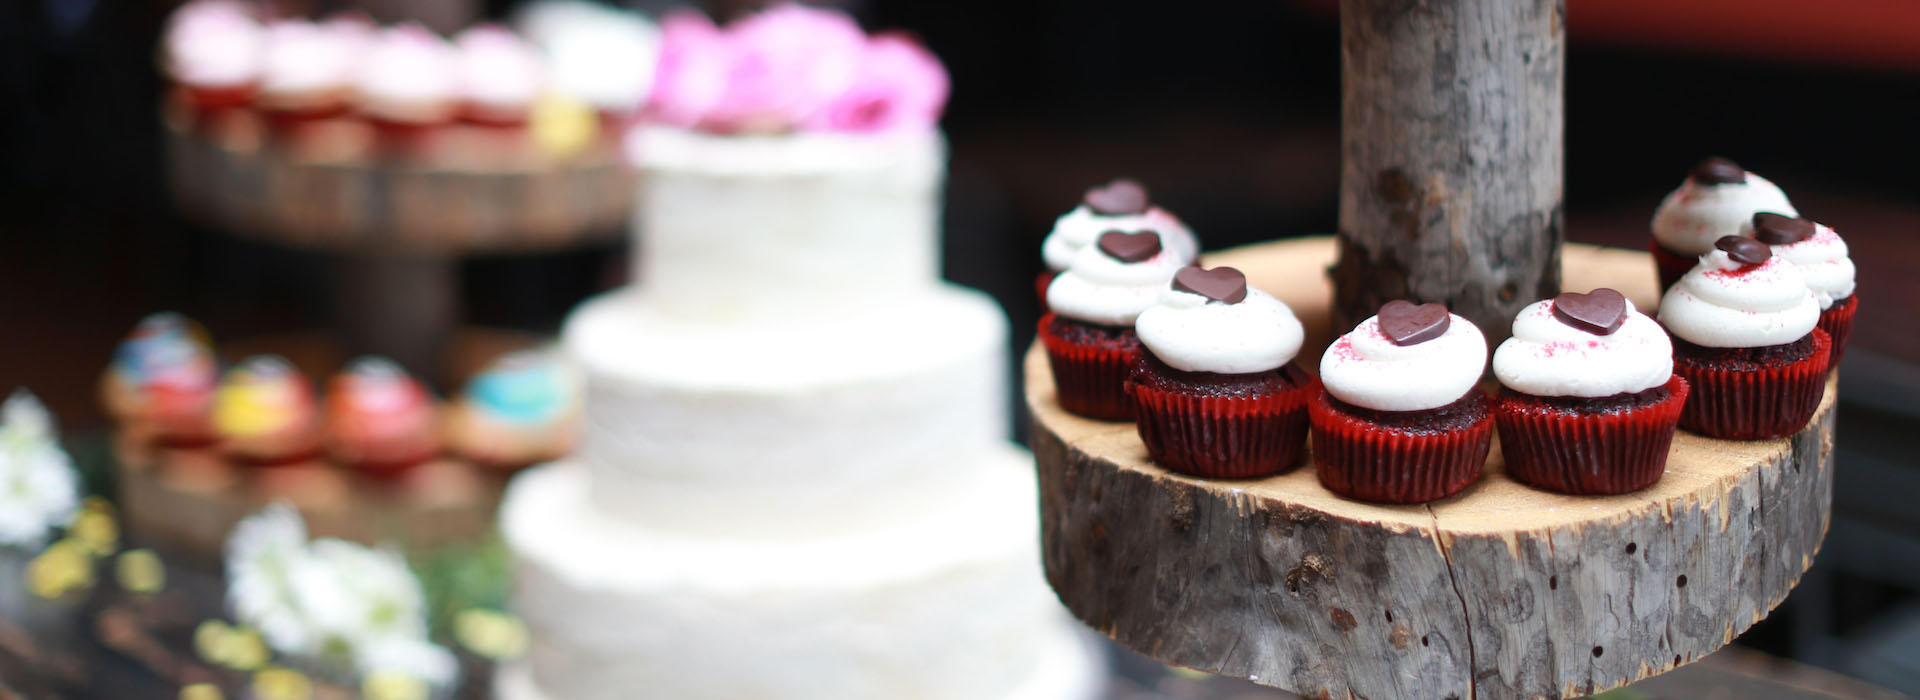 cupcakes and cakes chattanooga tn